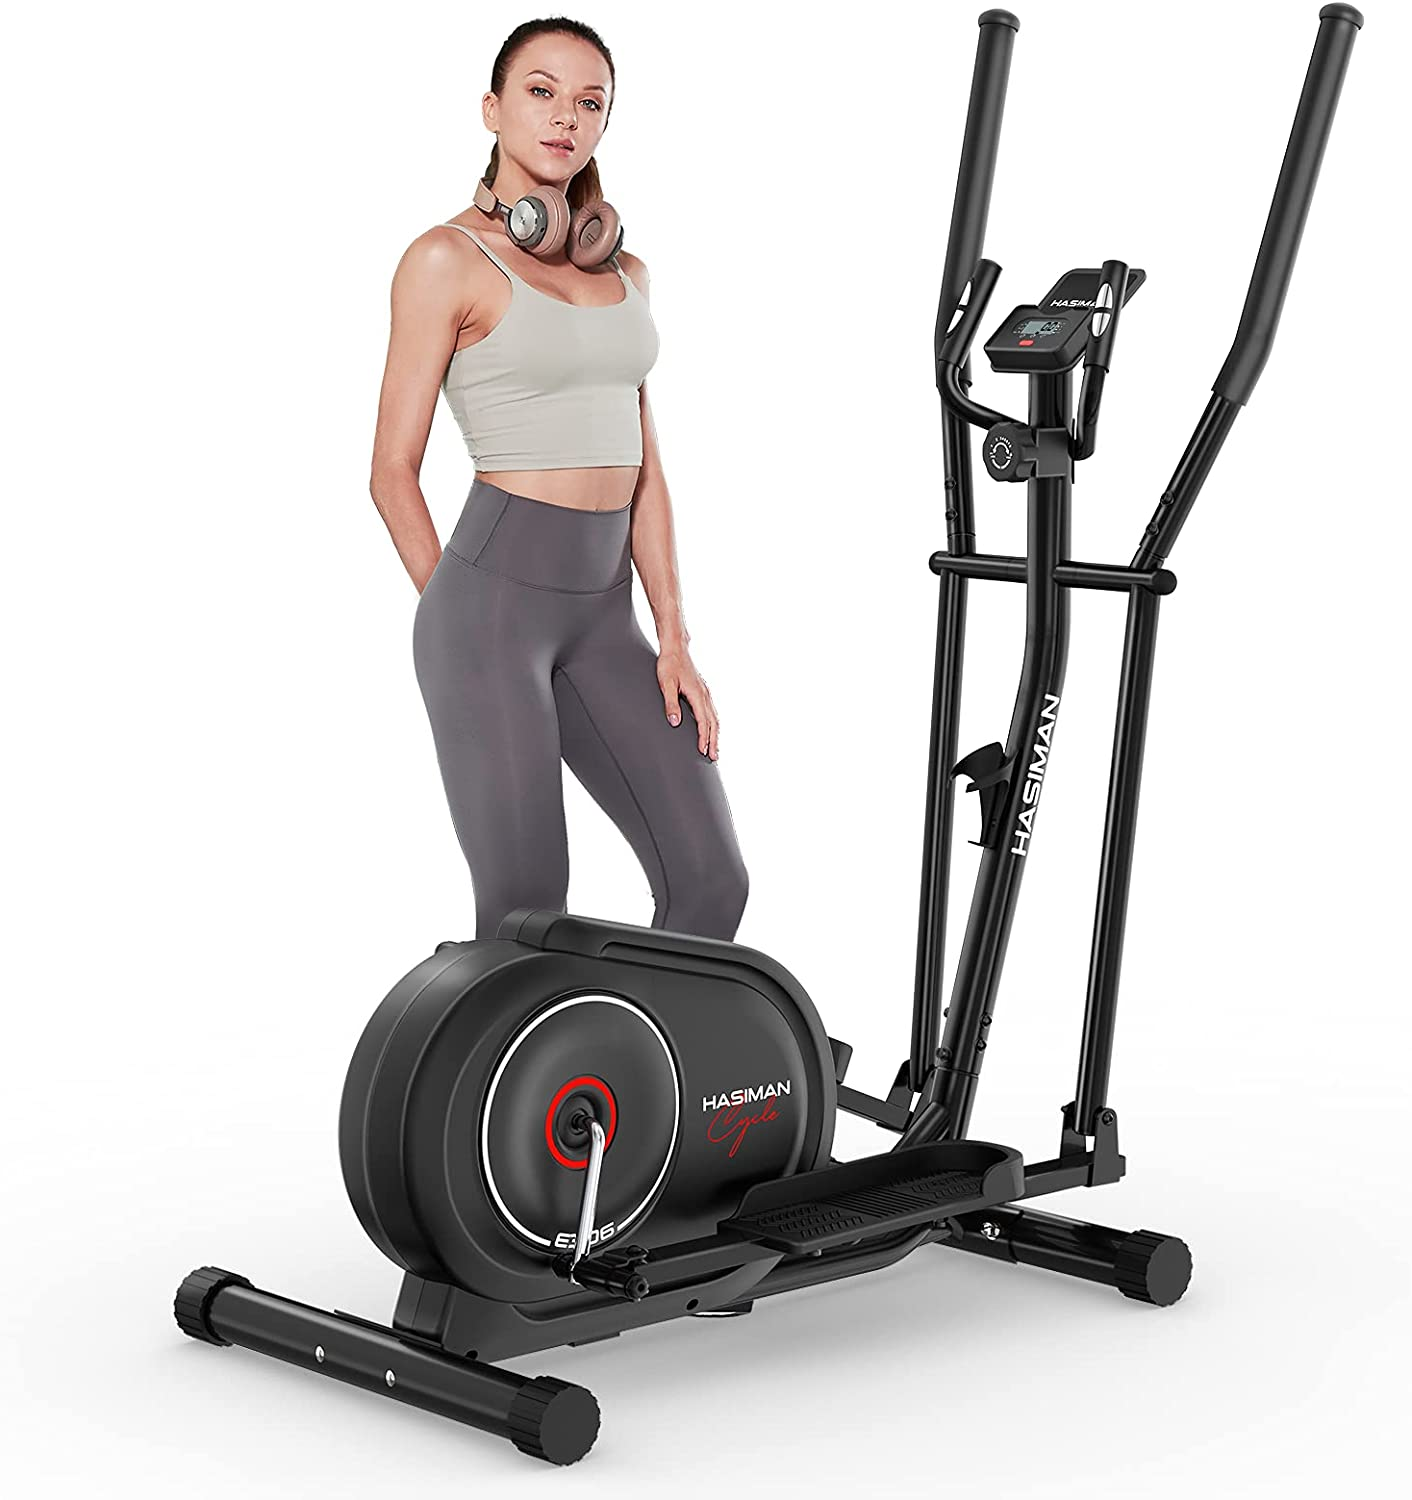 HASIMAN Elliptical Machine for Home Use Cross Trainer with Hyper-Silent Magnetic Driving System with 8 Levels Adjustable Resistance LCD Monitor and Pulse Sensor